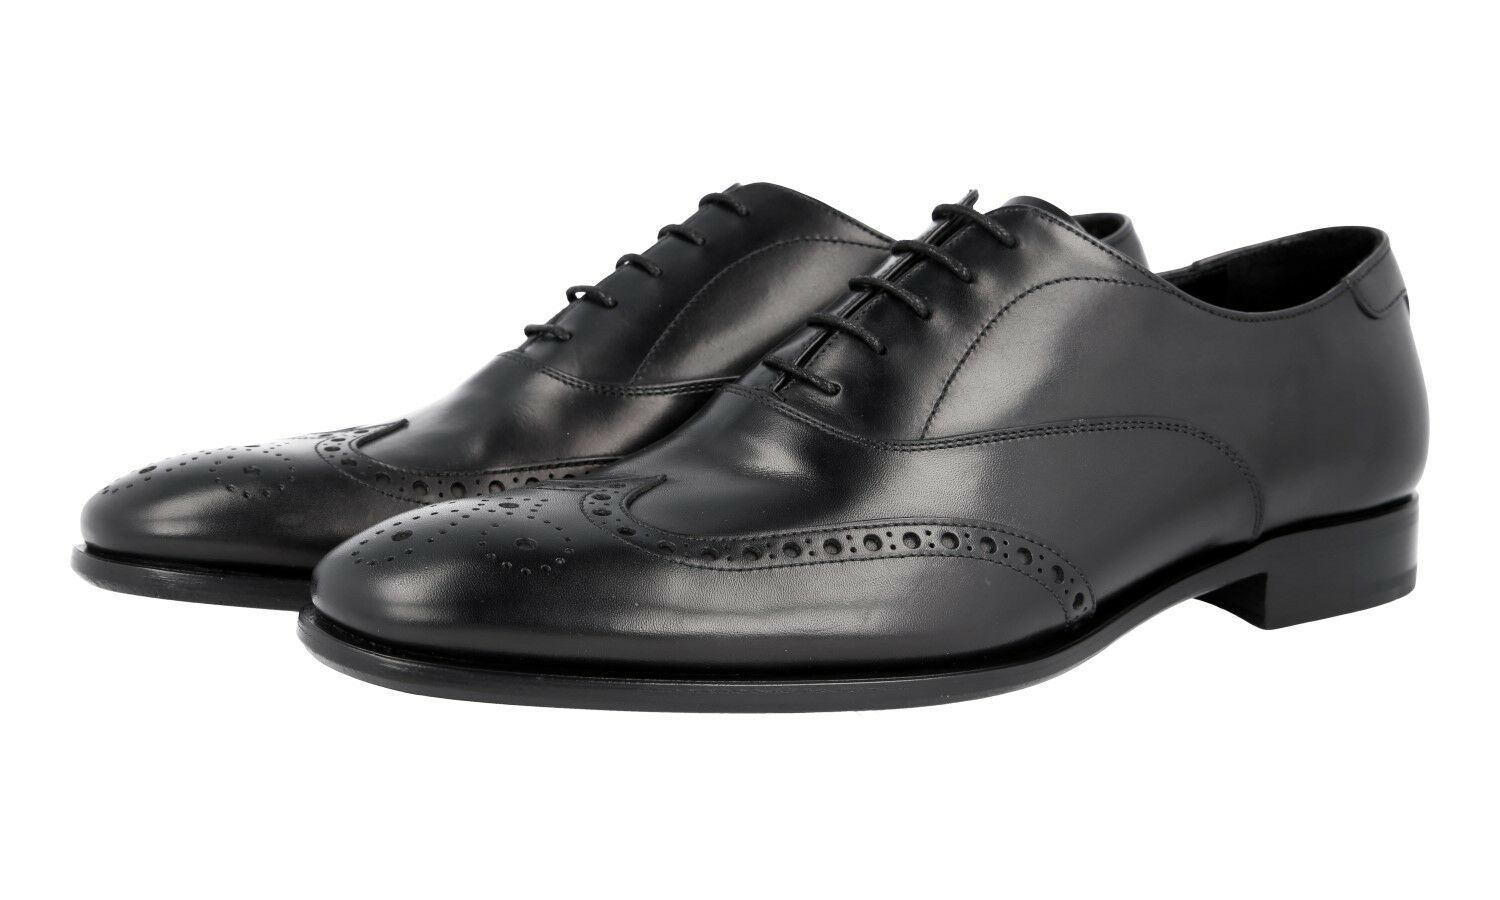 AUTH LUXURY PRADA FULL BROGUE OXFORD SHOES 2EB157 BLACK US 9.5 EU 42,5 43